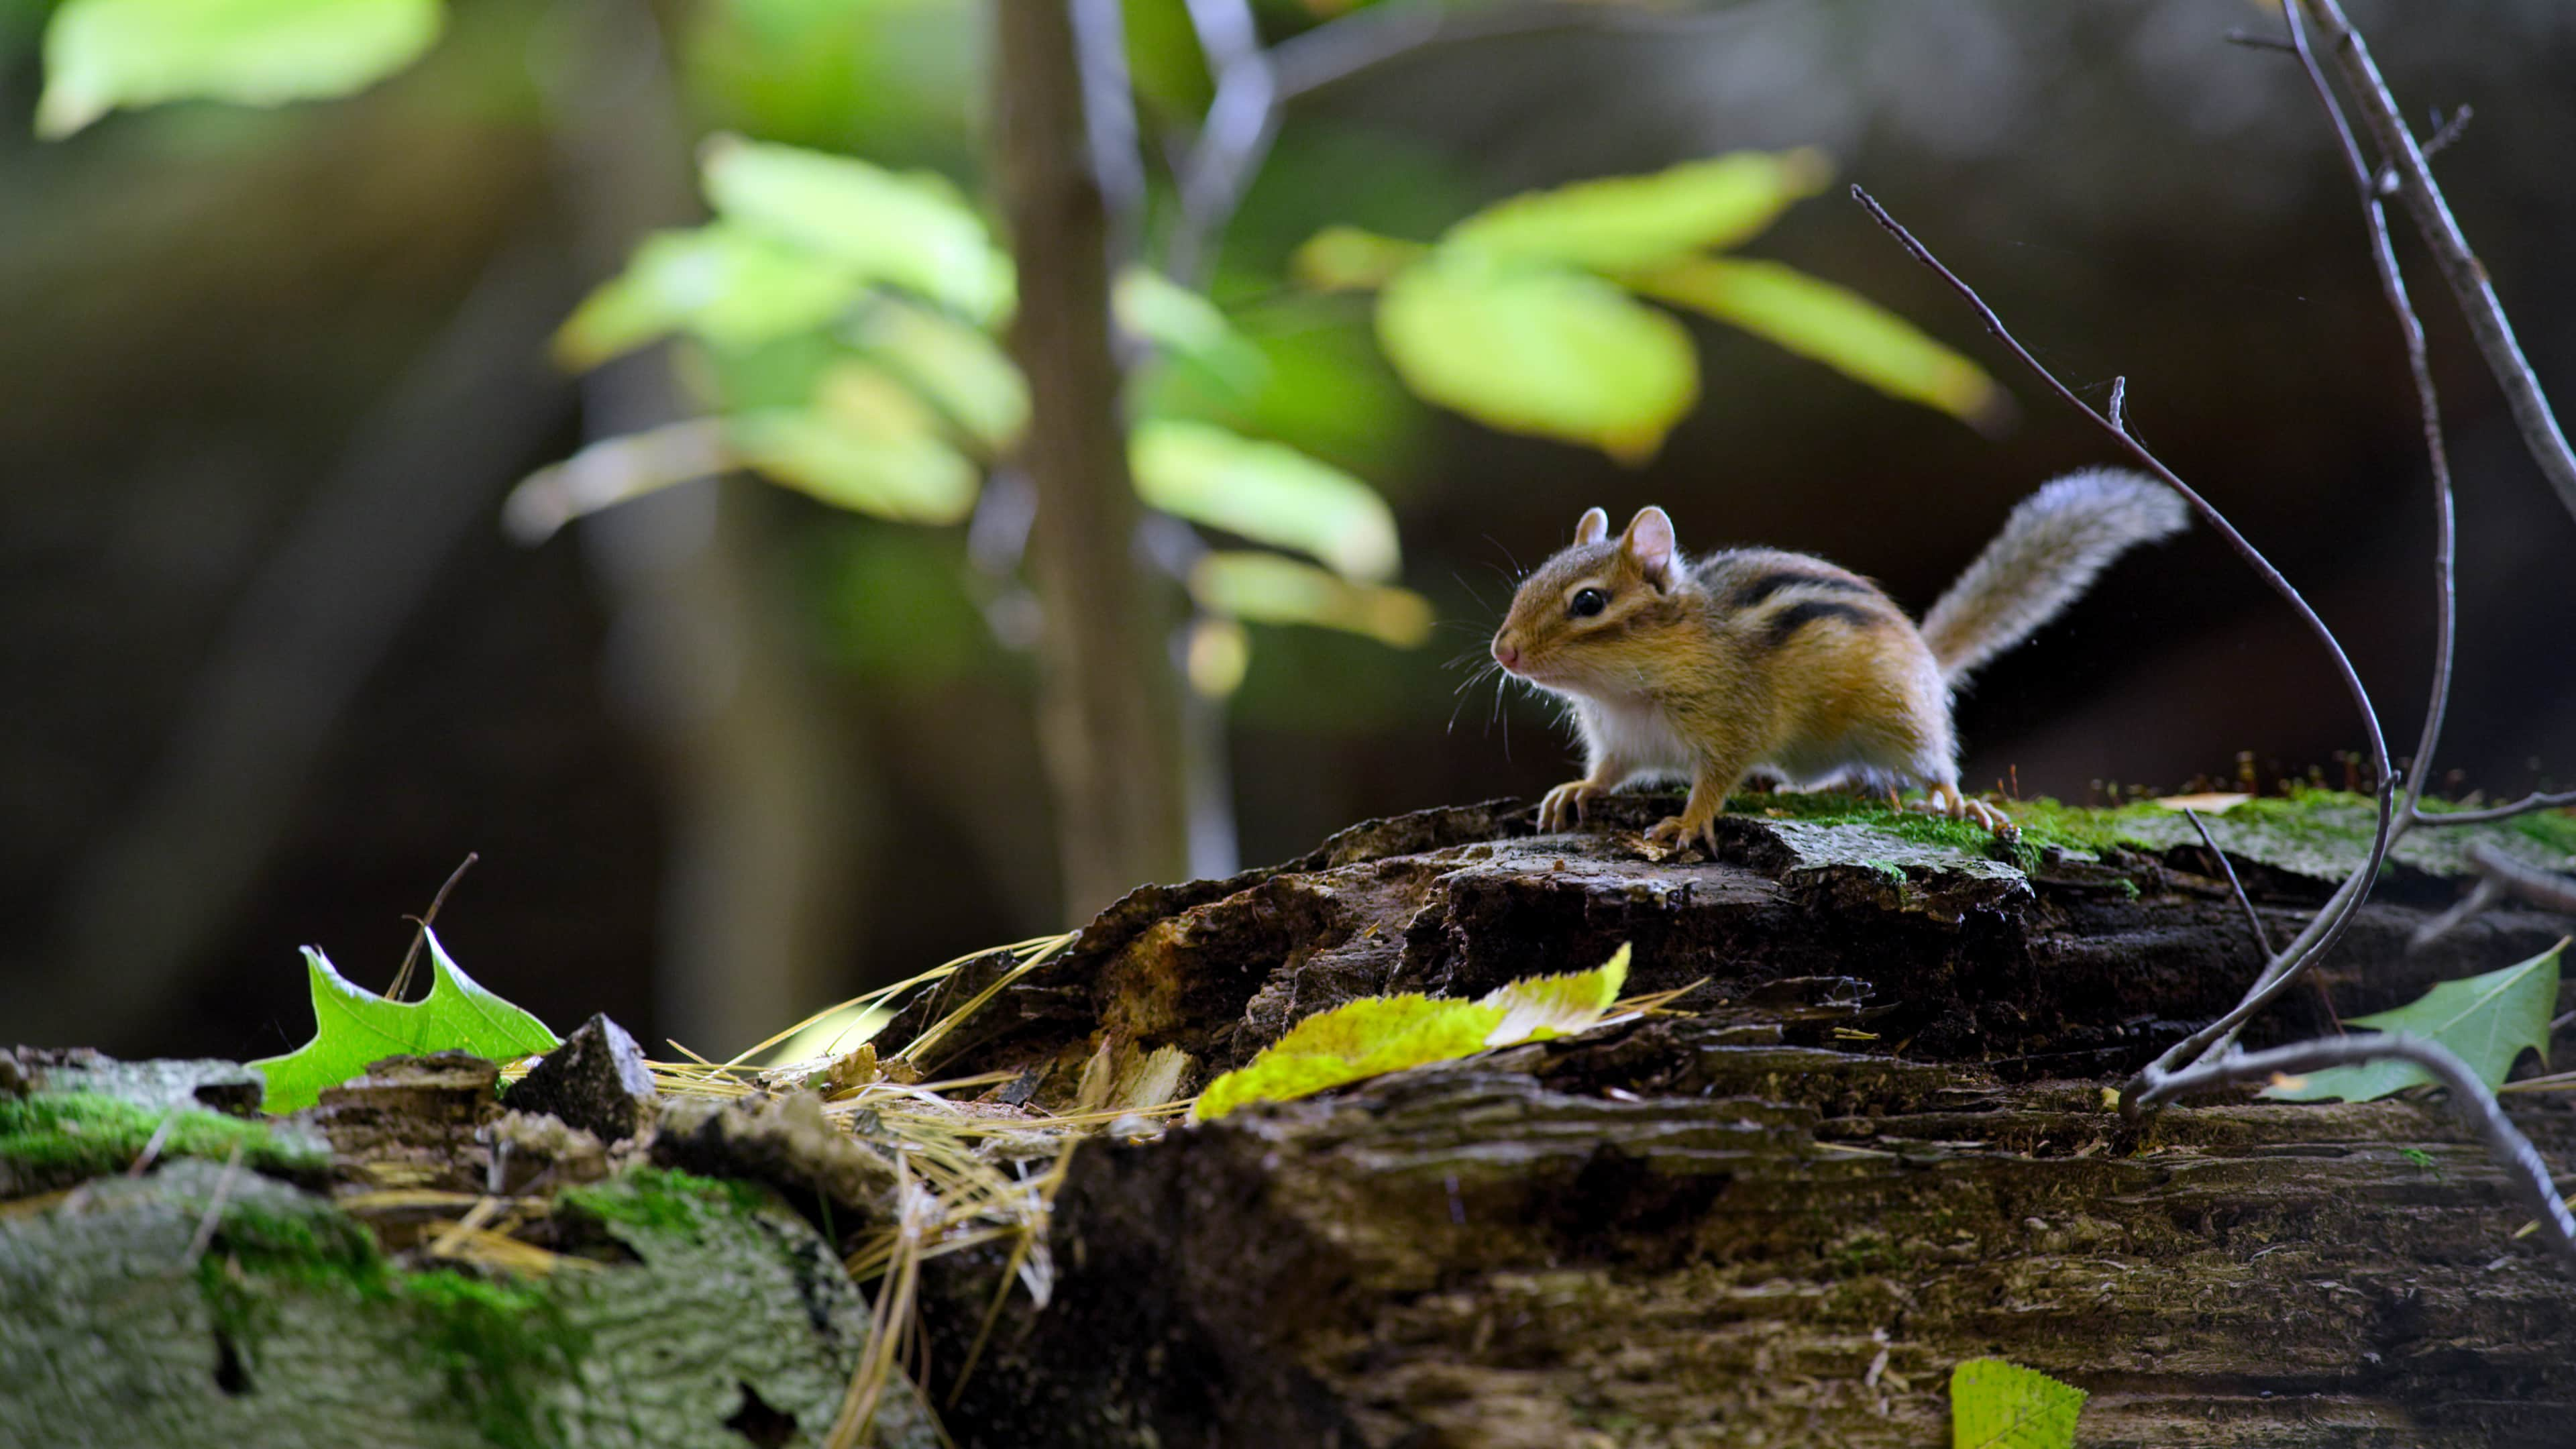 It's all cute all the time in 'Tiny World,' the new Apple TV+ nature docuseries